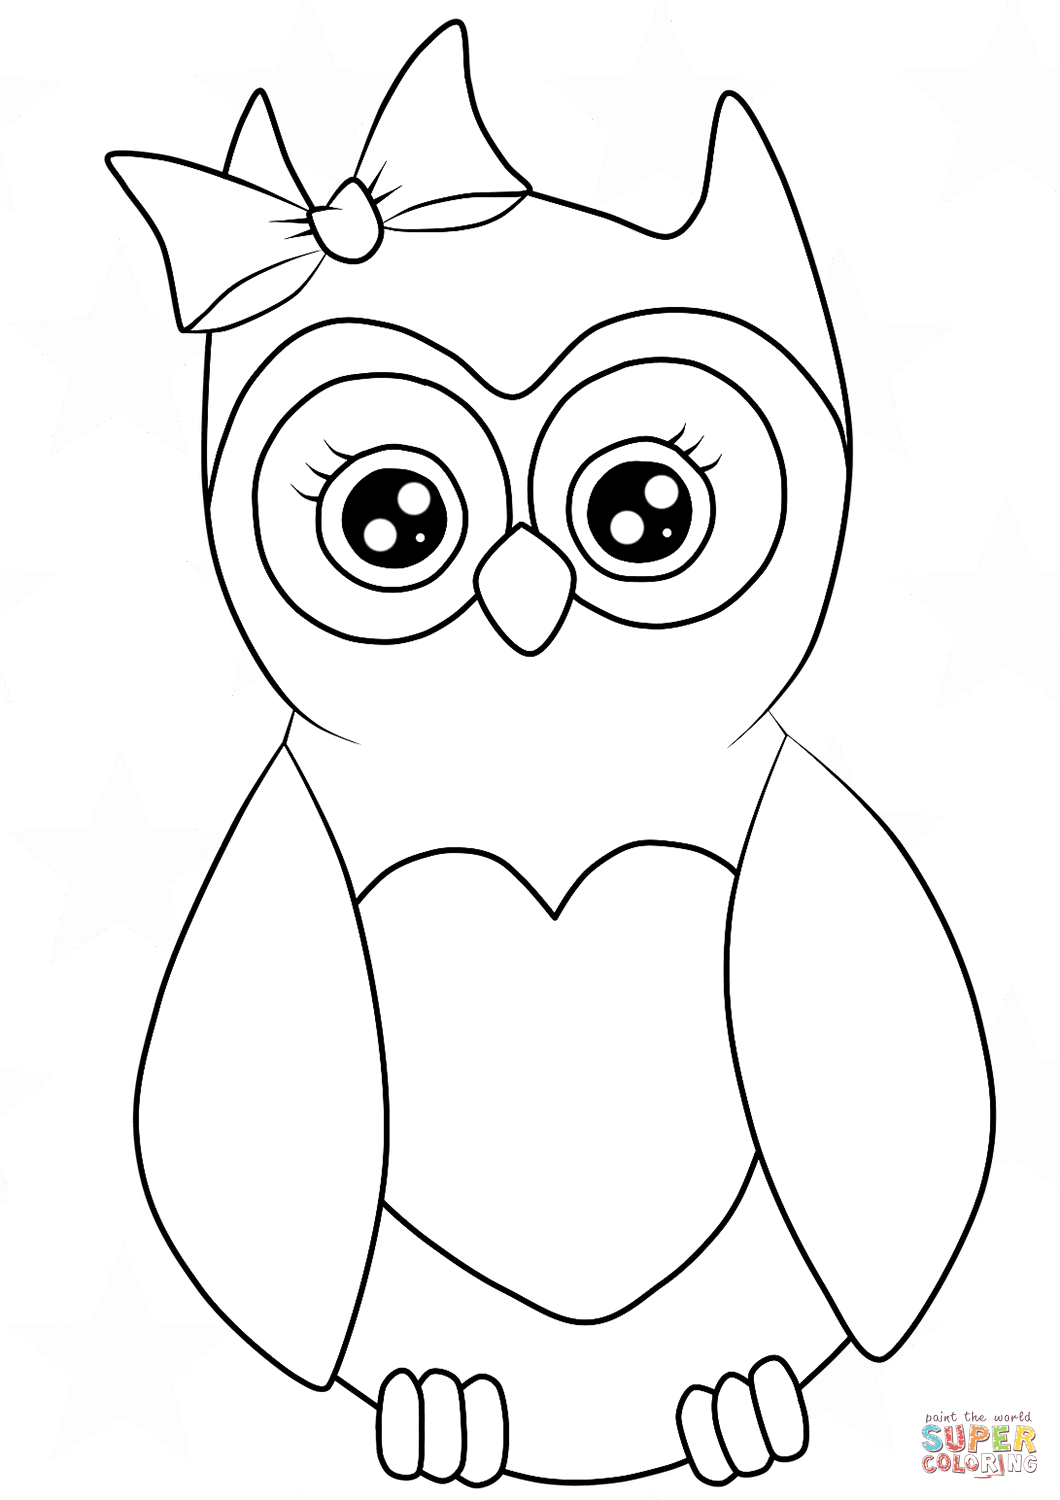 Cute Owl Coloring Pages Bratz Coloring Pages Eulen Vorlagen Eulenschablonen Eulenmuster